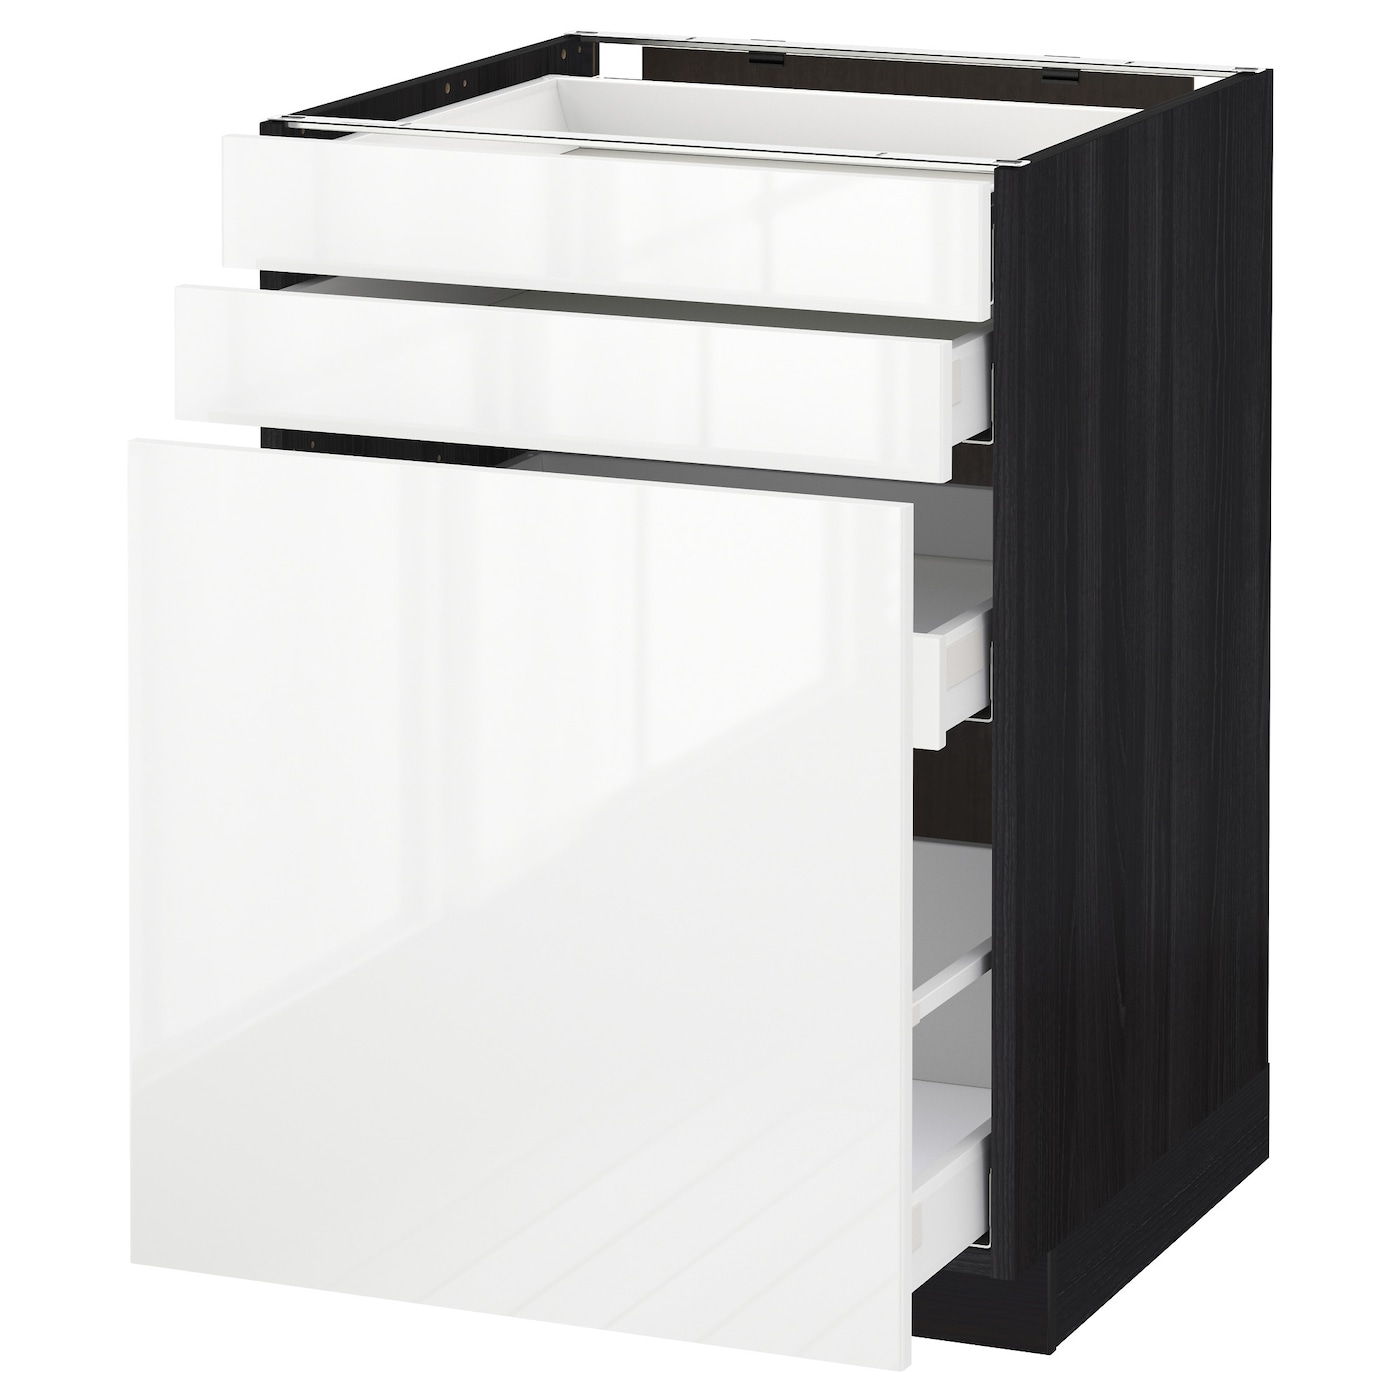 IKEA METOD/MAXIMERA base cab pull-out storage/2 fronts Smooth-running drawers with stop.